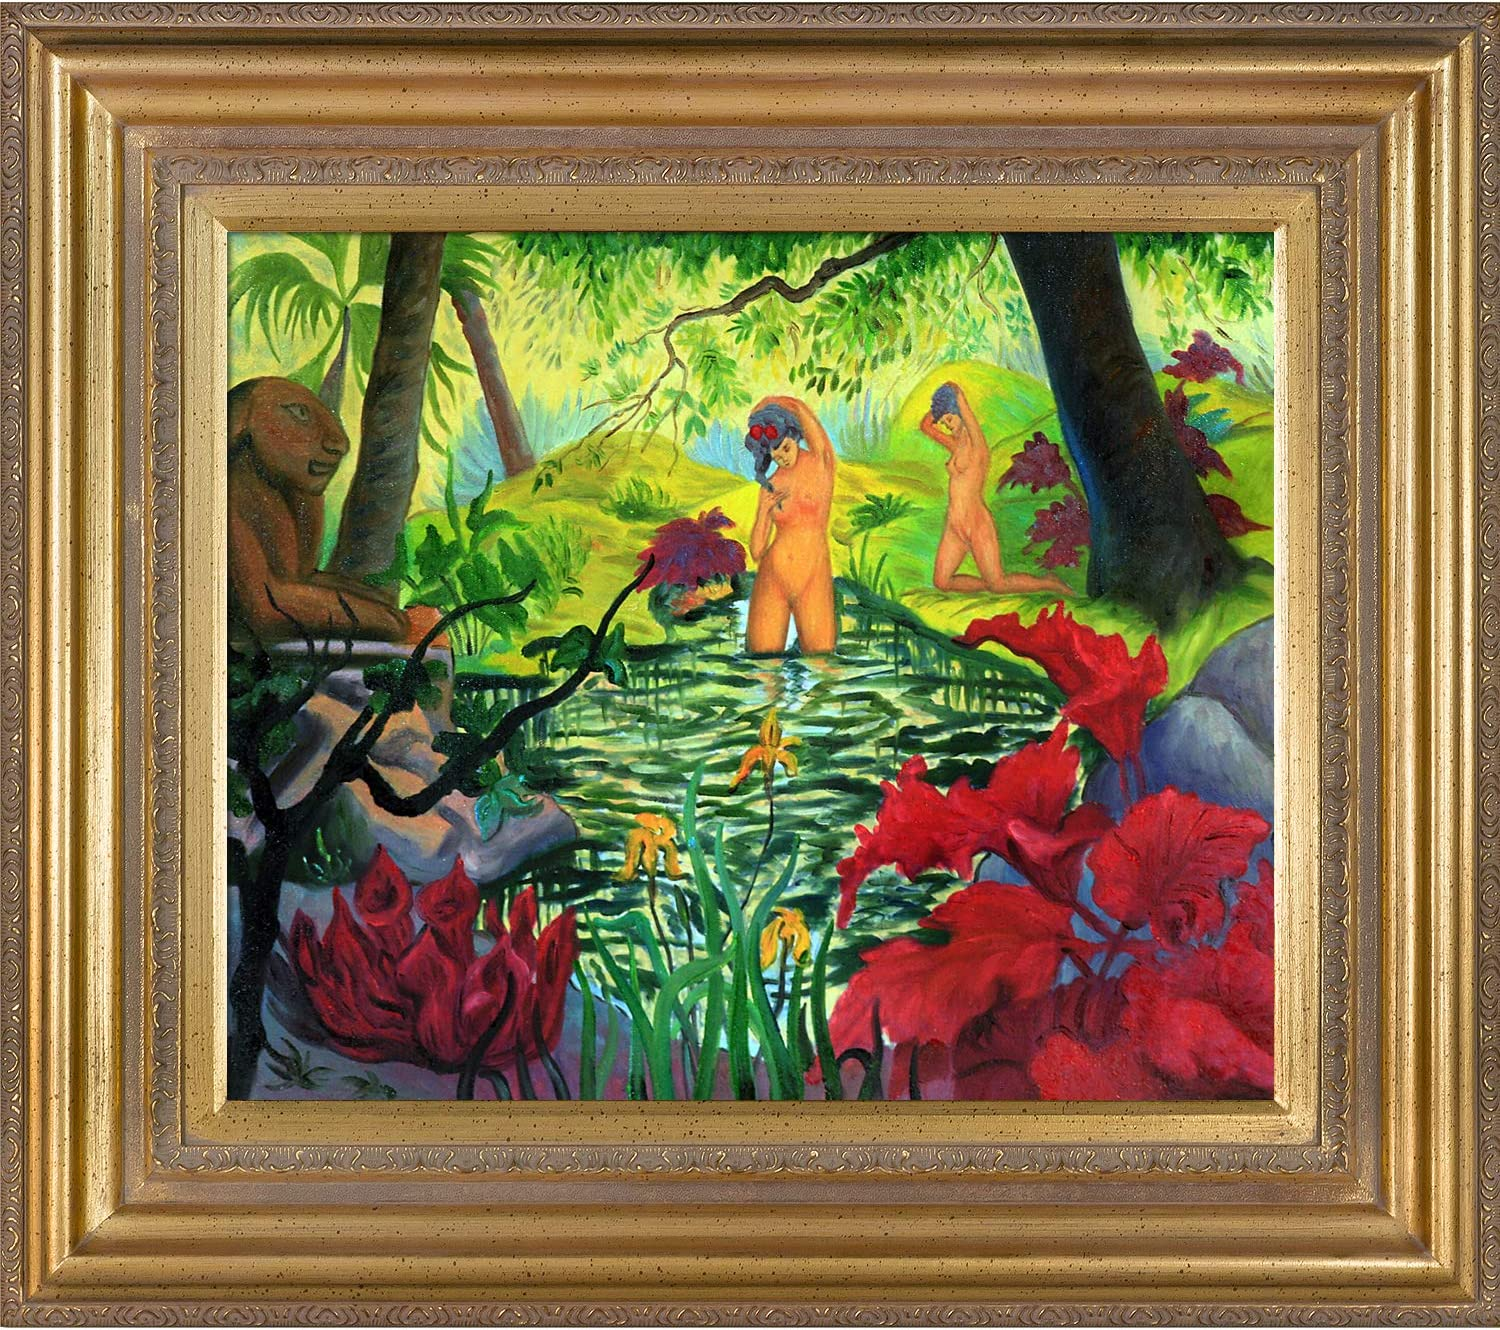 overstockArt The Blue Room-Framed Oil Reproduction of an Original Painting by Paul-Elie Ranson